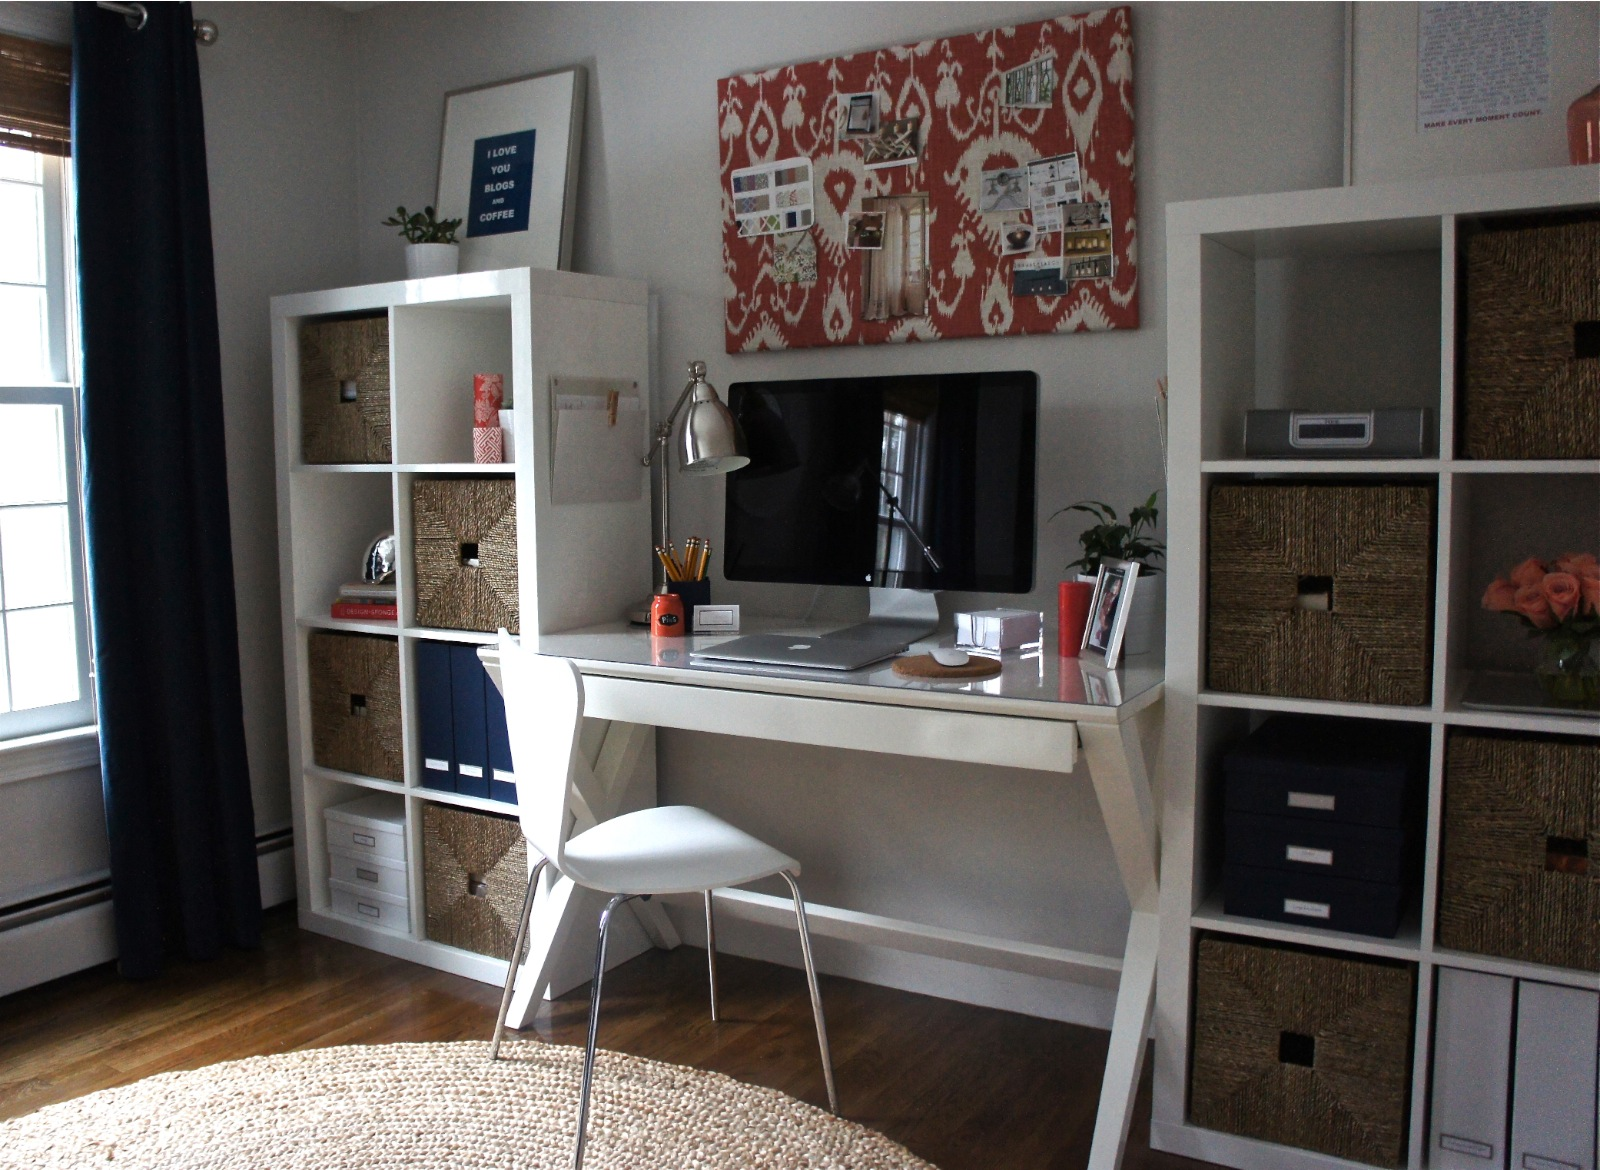 Home with baxter january 2013 - Container store home office ...